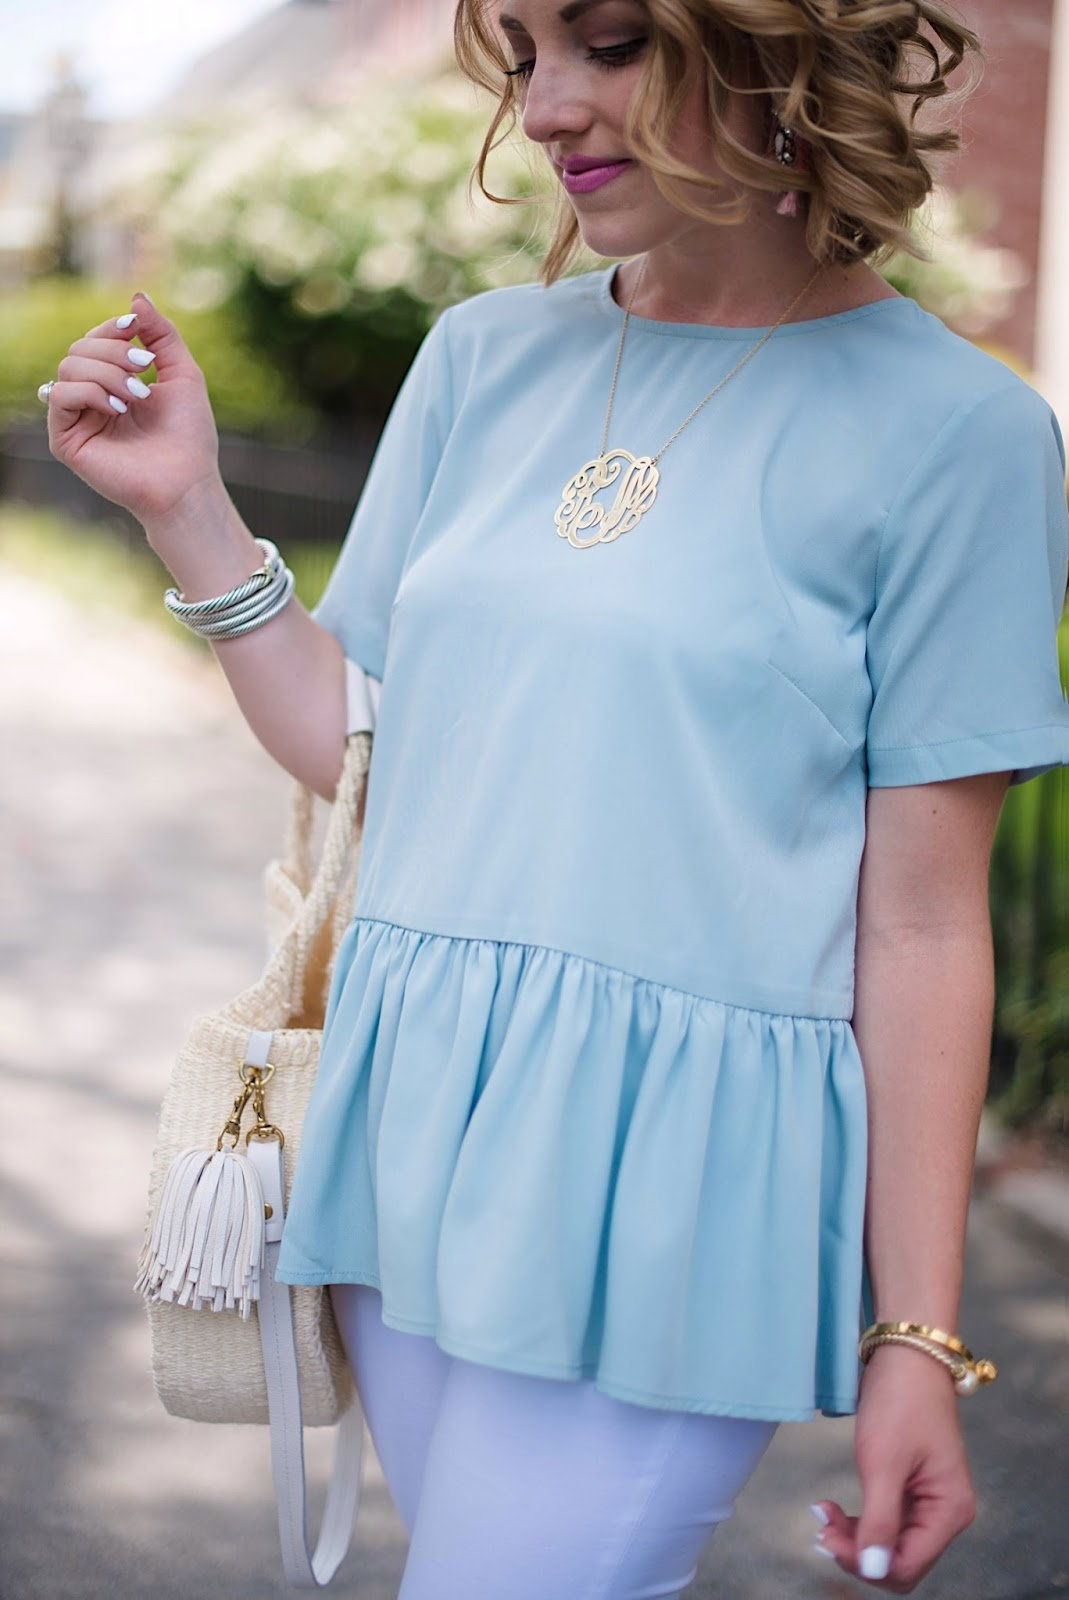 Peplum Top - Click through to see more on Something Delightful blog!